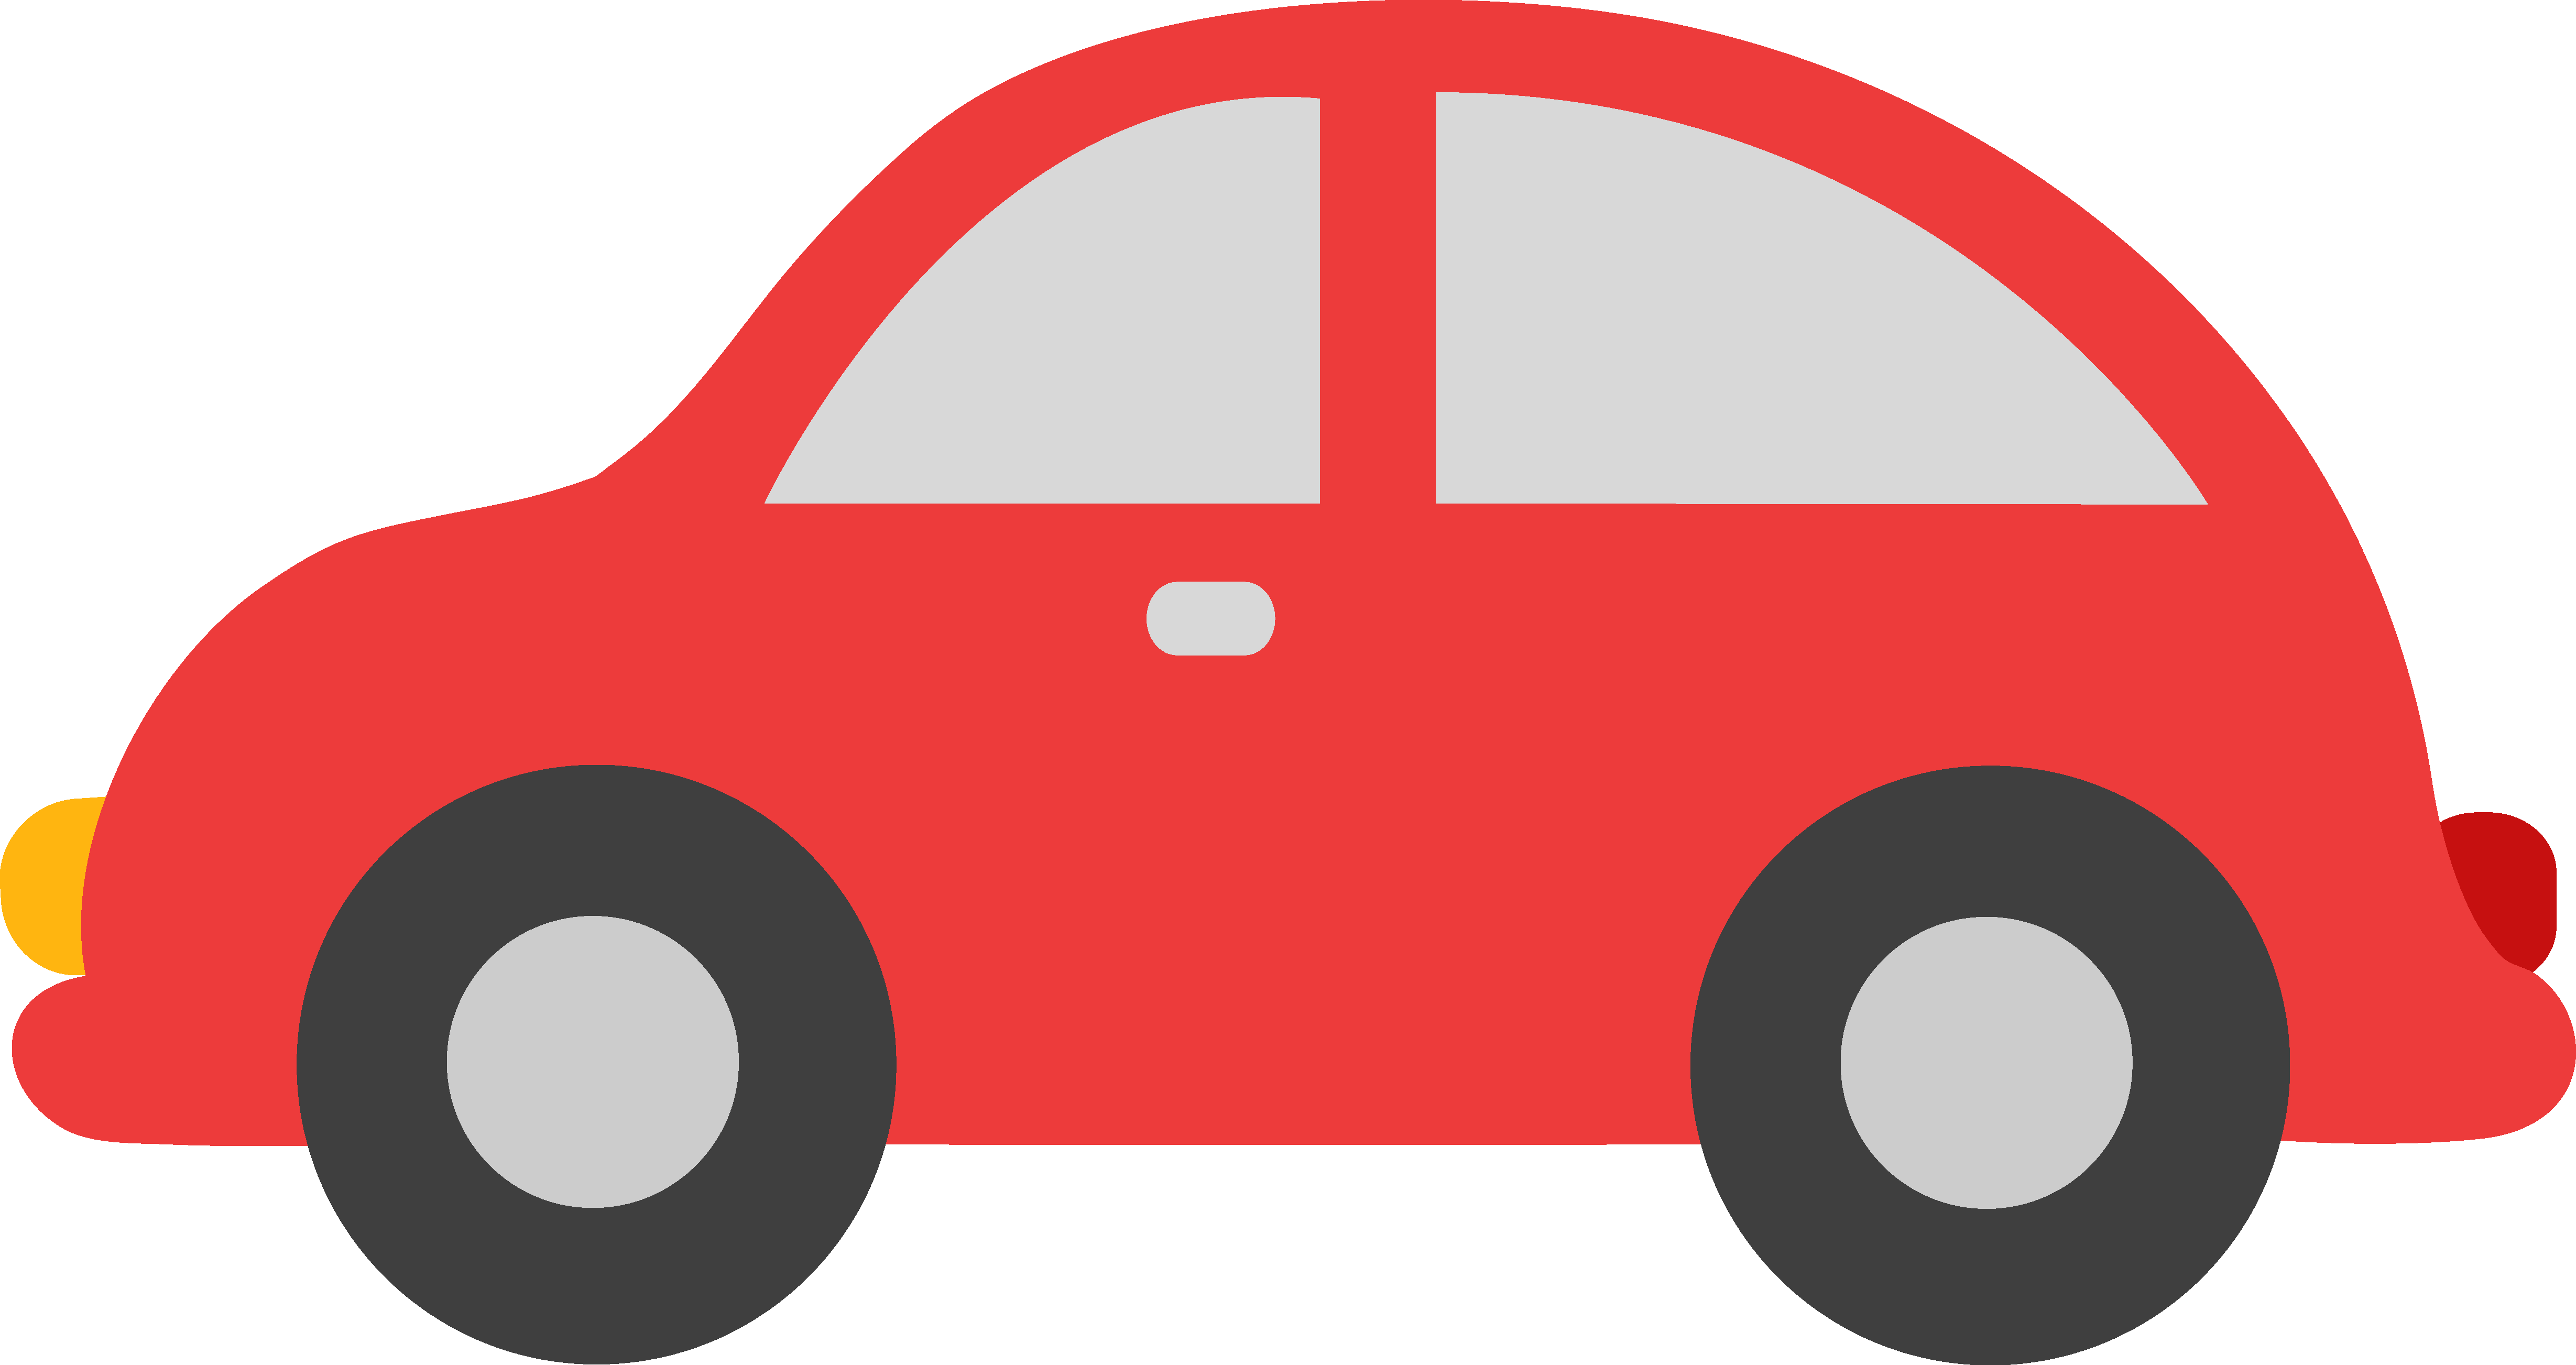 svg transparent library Toy car free clip. Minivan clipart red suv.